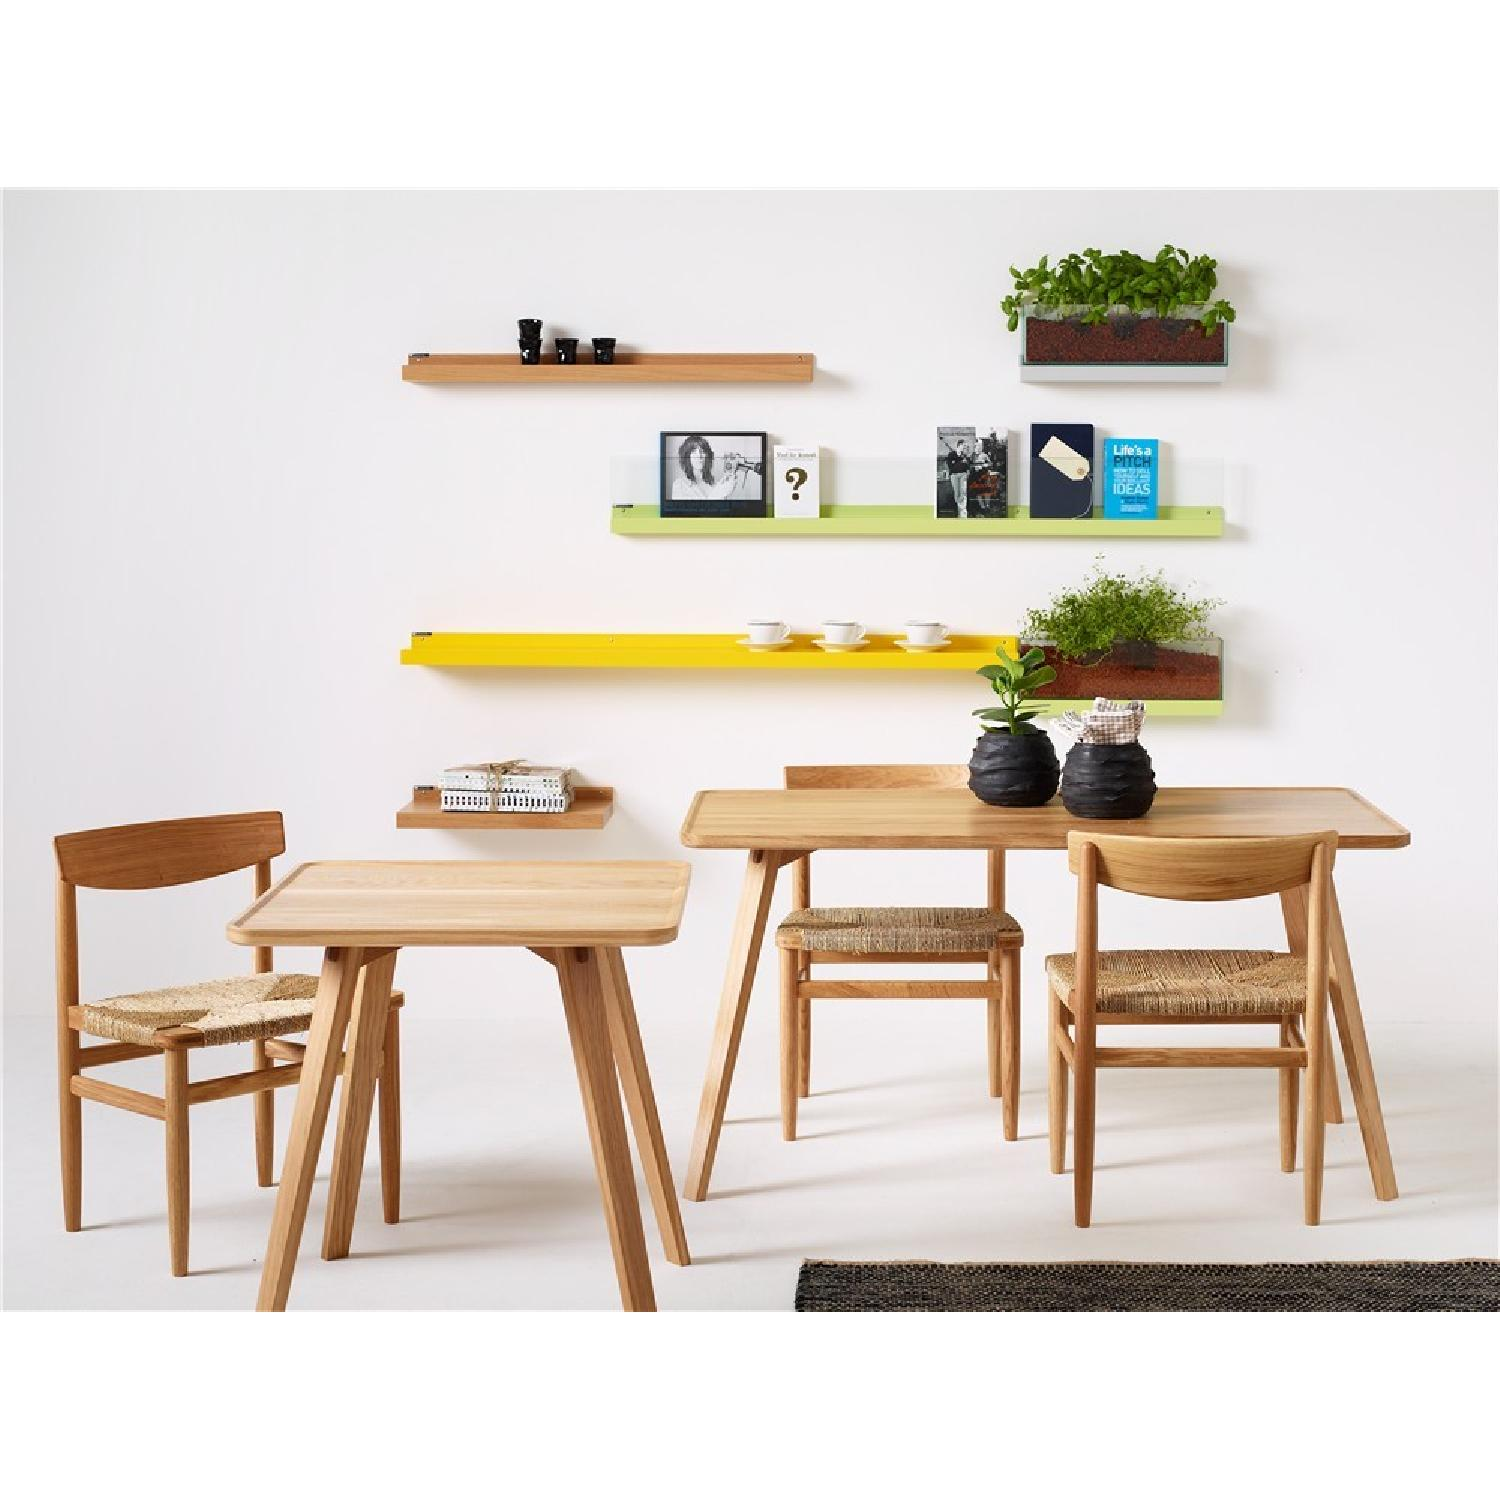 Karl Andersson & Sonner Oresund Oak Dining Chairs - image-7